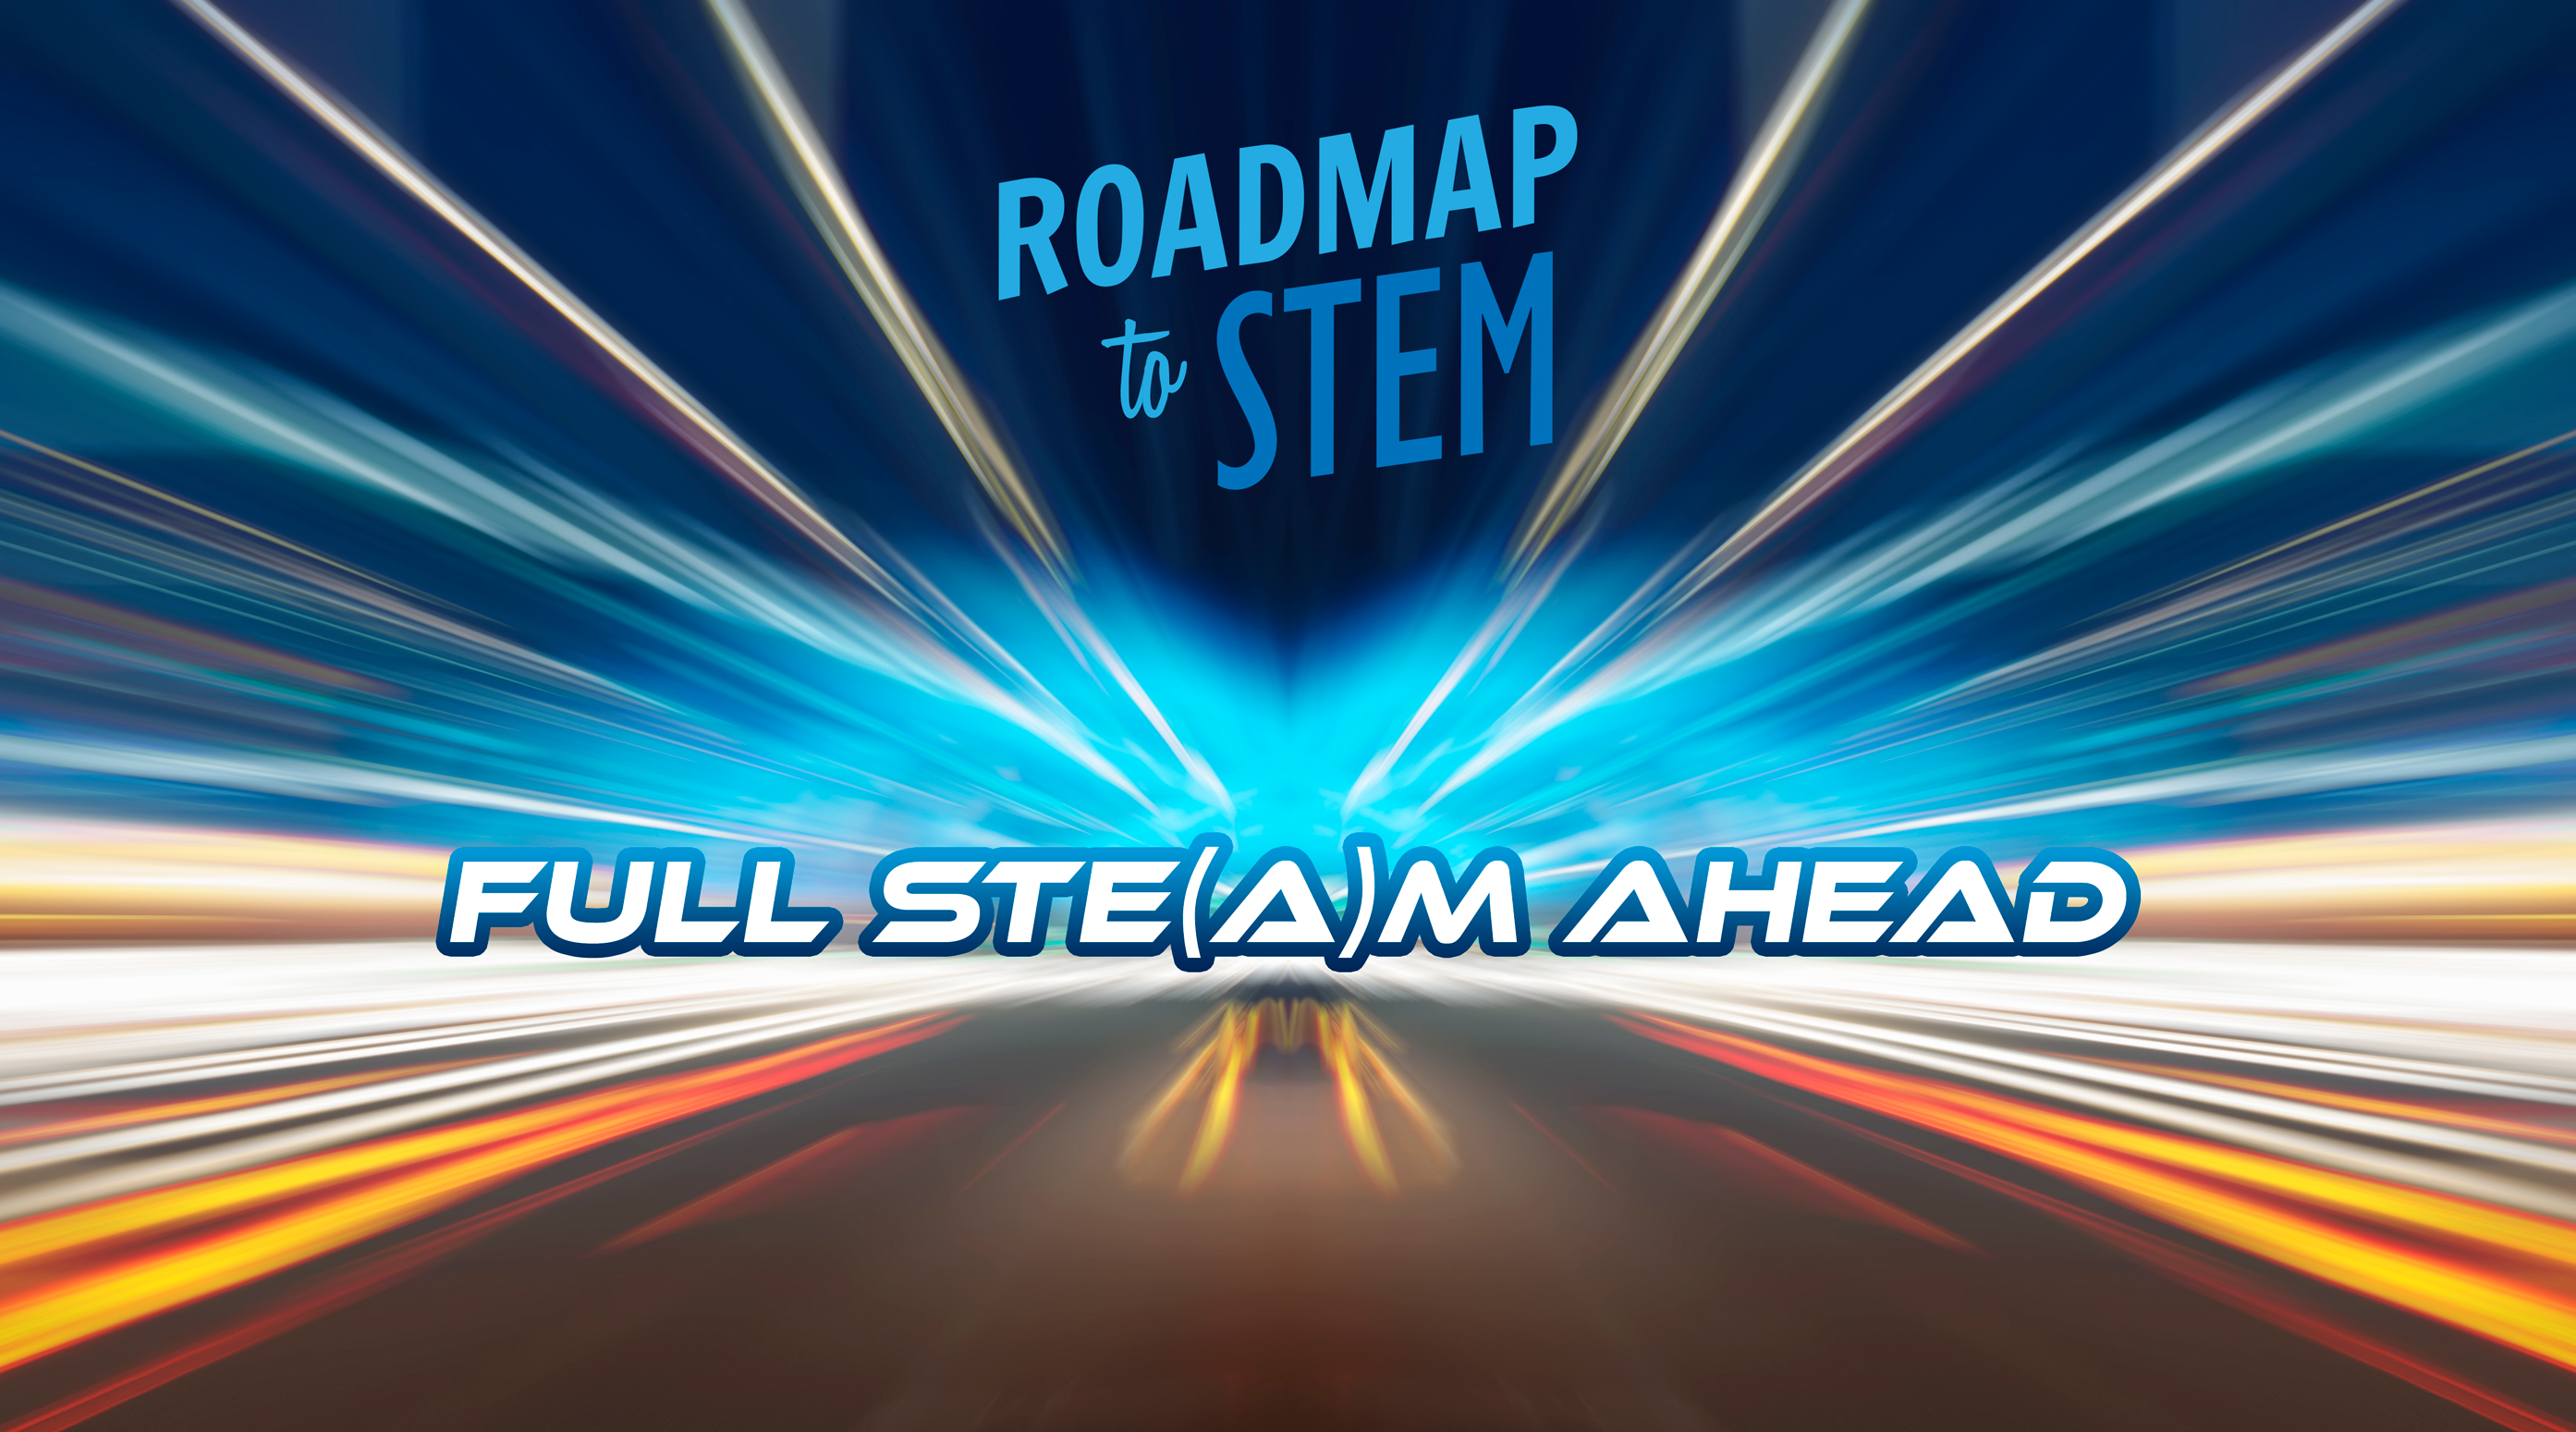 2017 Roadmap to STEM Conference